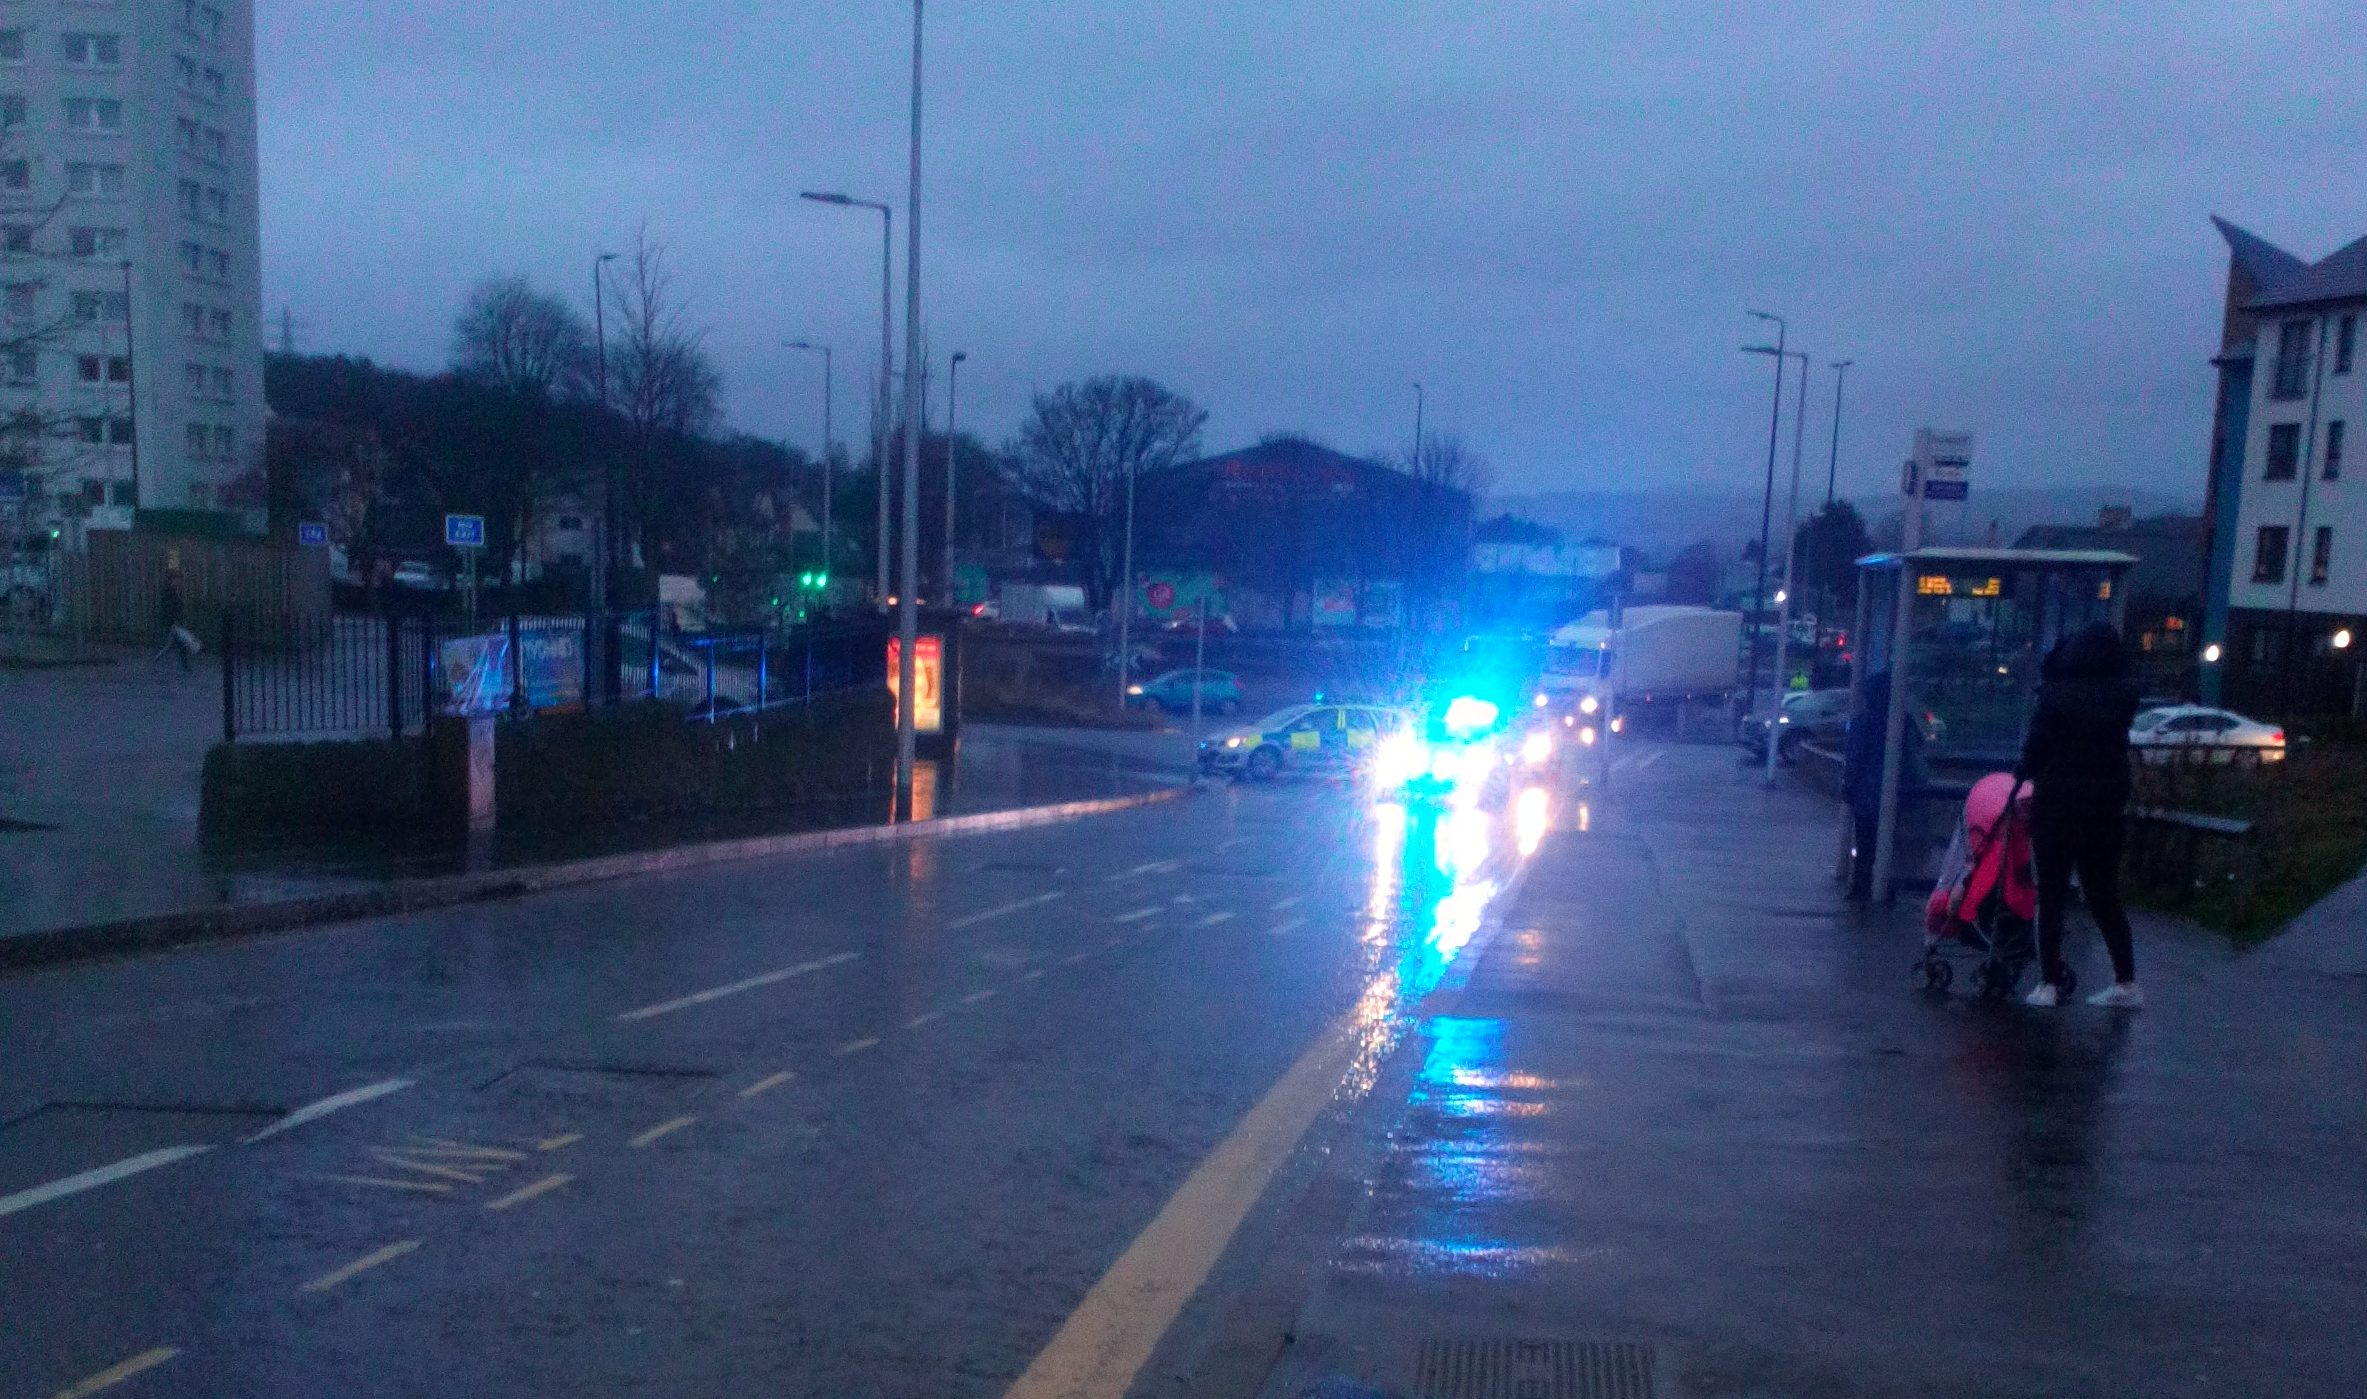 A police vehicle on Lochee High Street after a crash involving a bus and an elderly pedestrian.